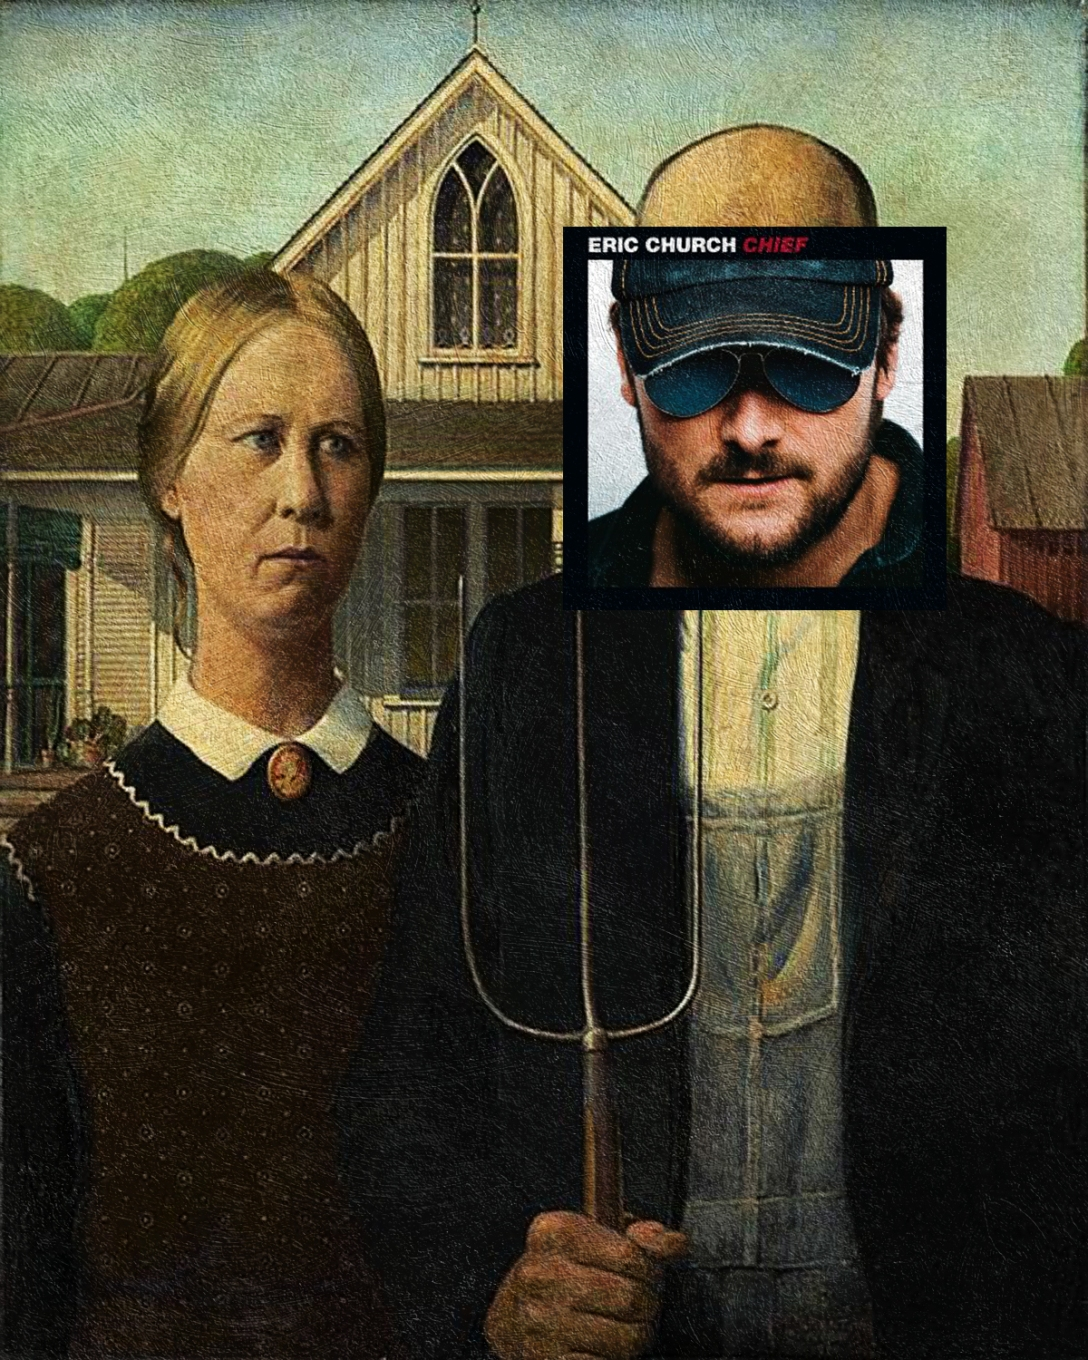 Chief, Eric Church + Amerykański gotyk, Grant Wood